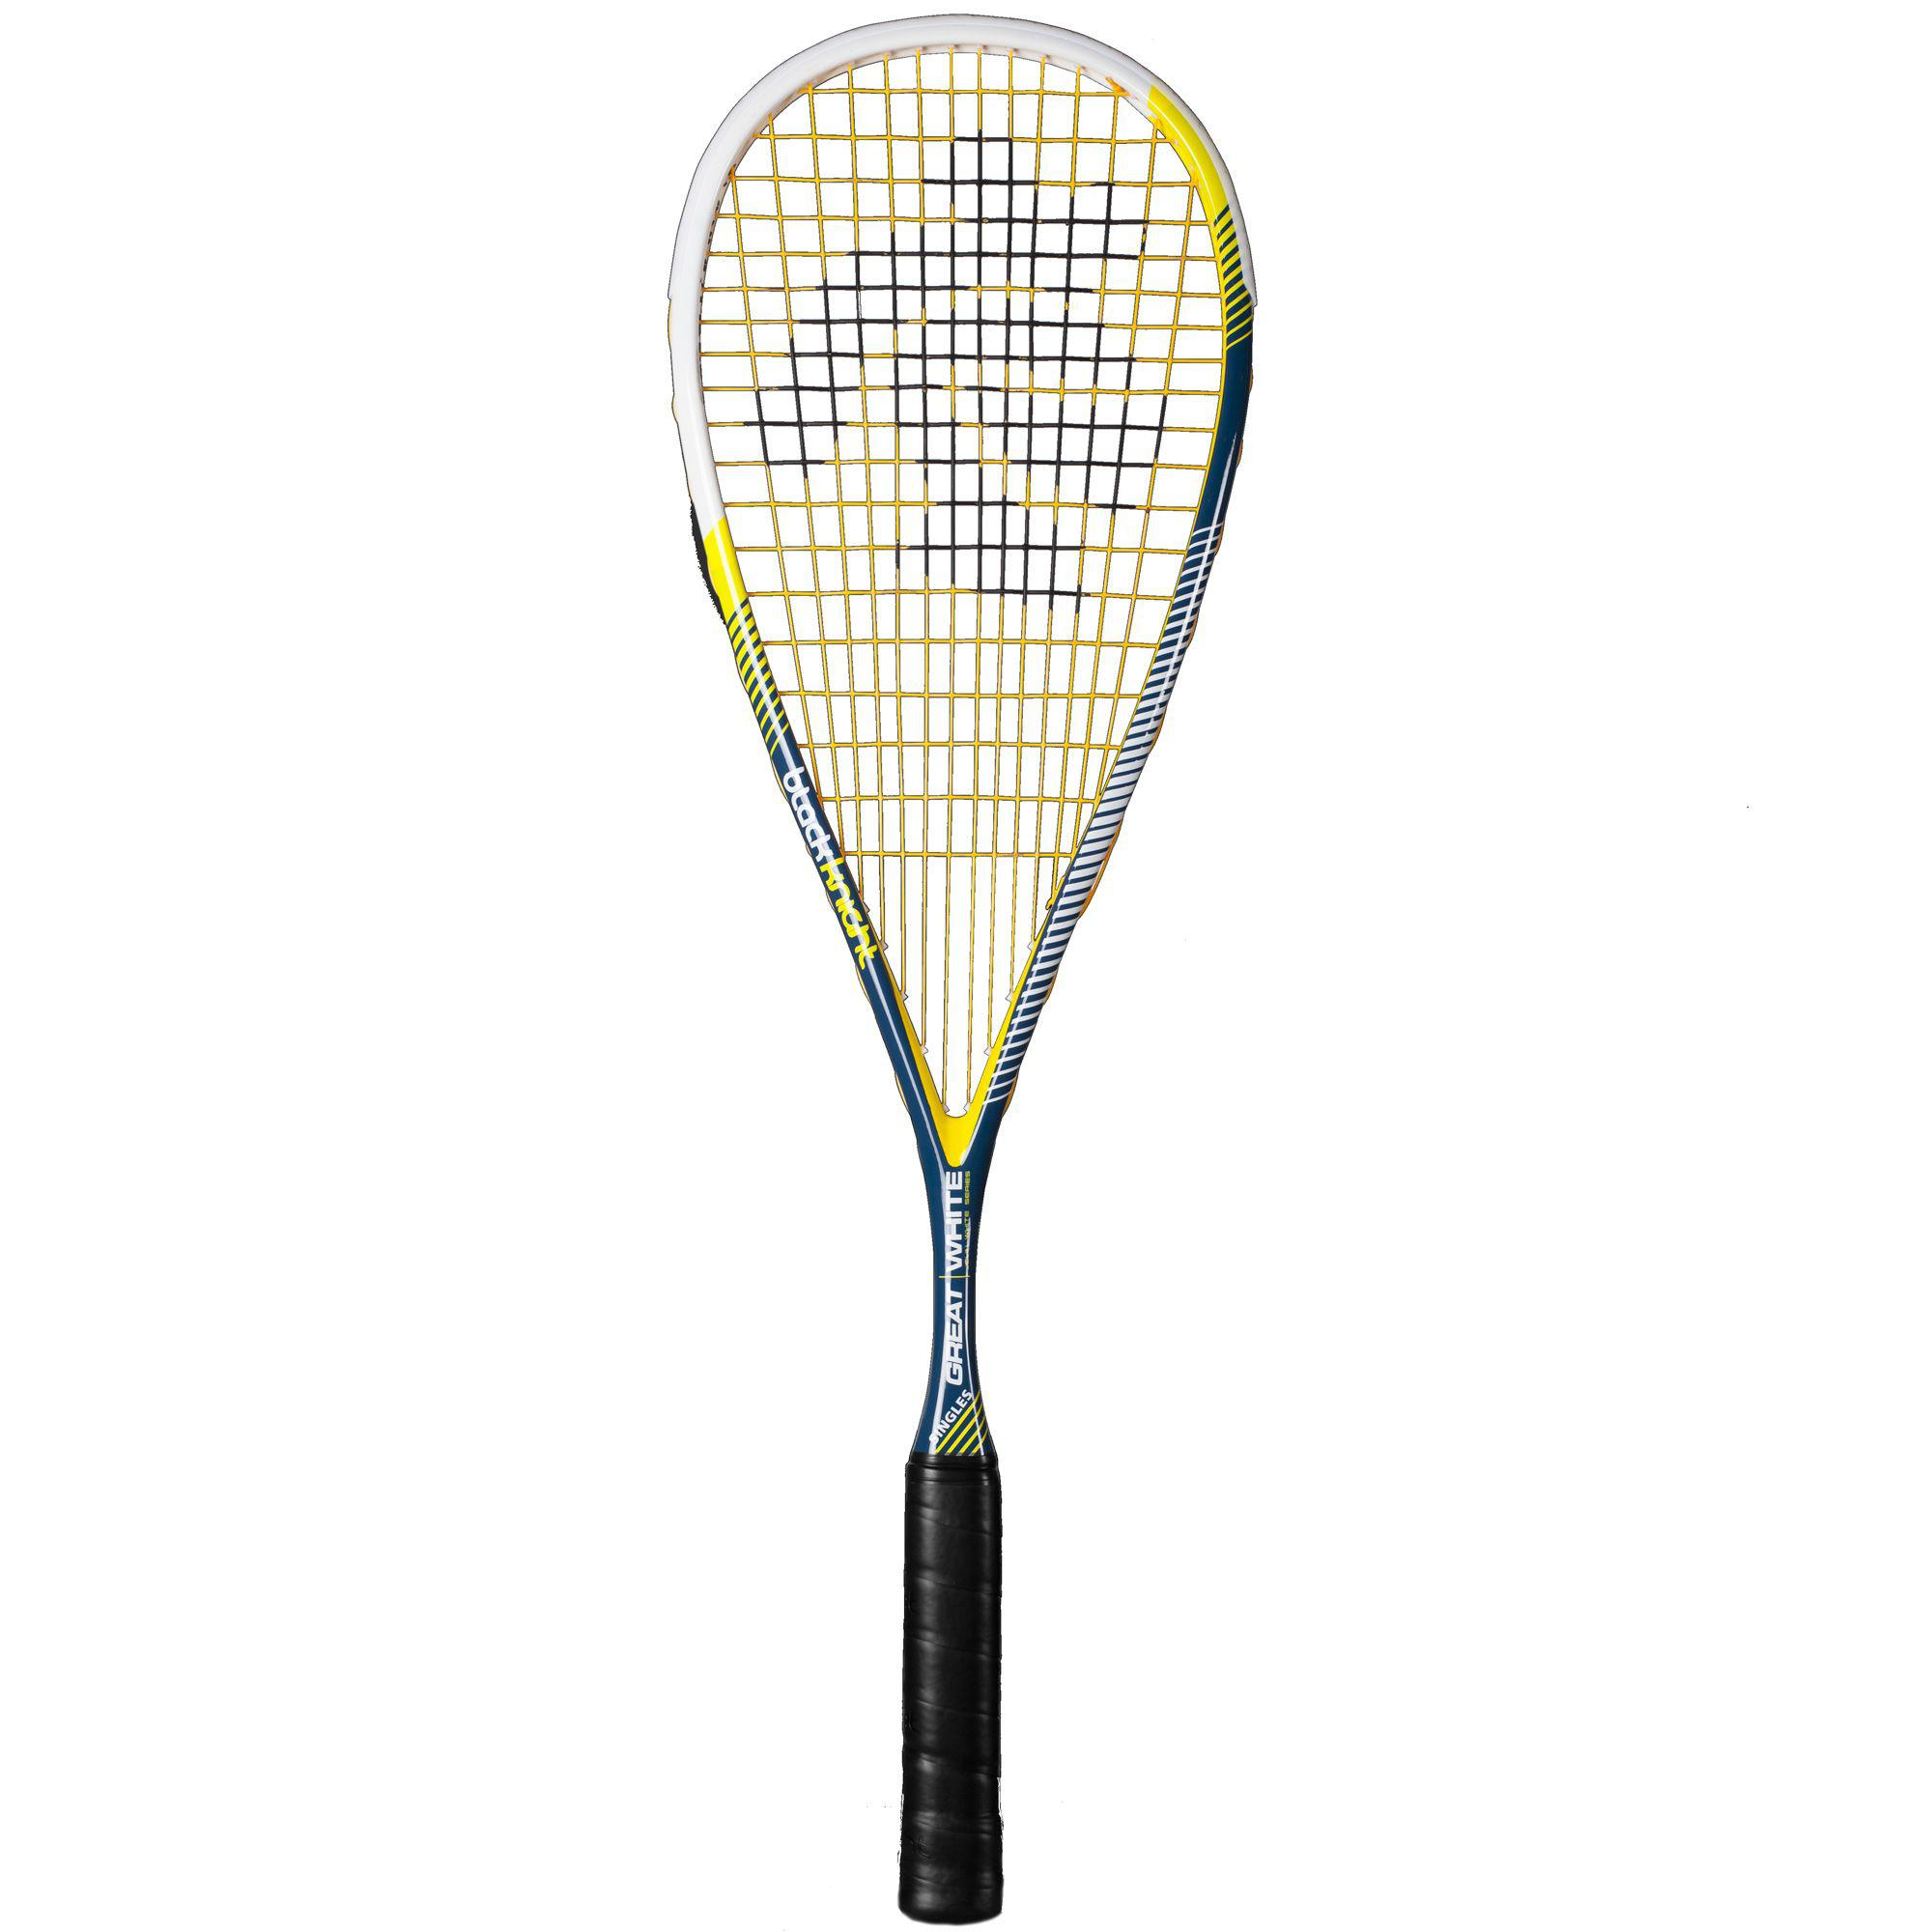 The Black Knight Great White Singles Squash Racket